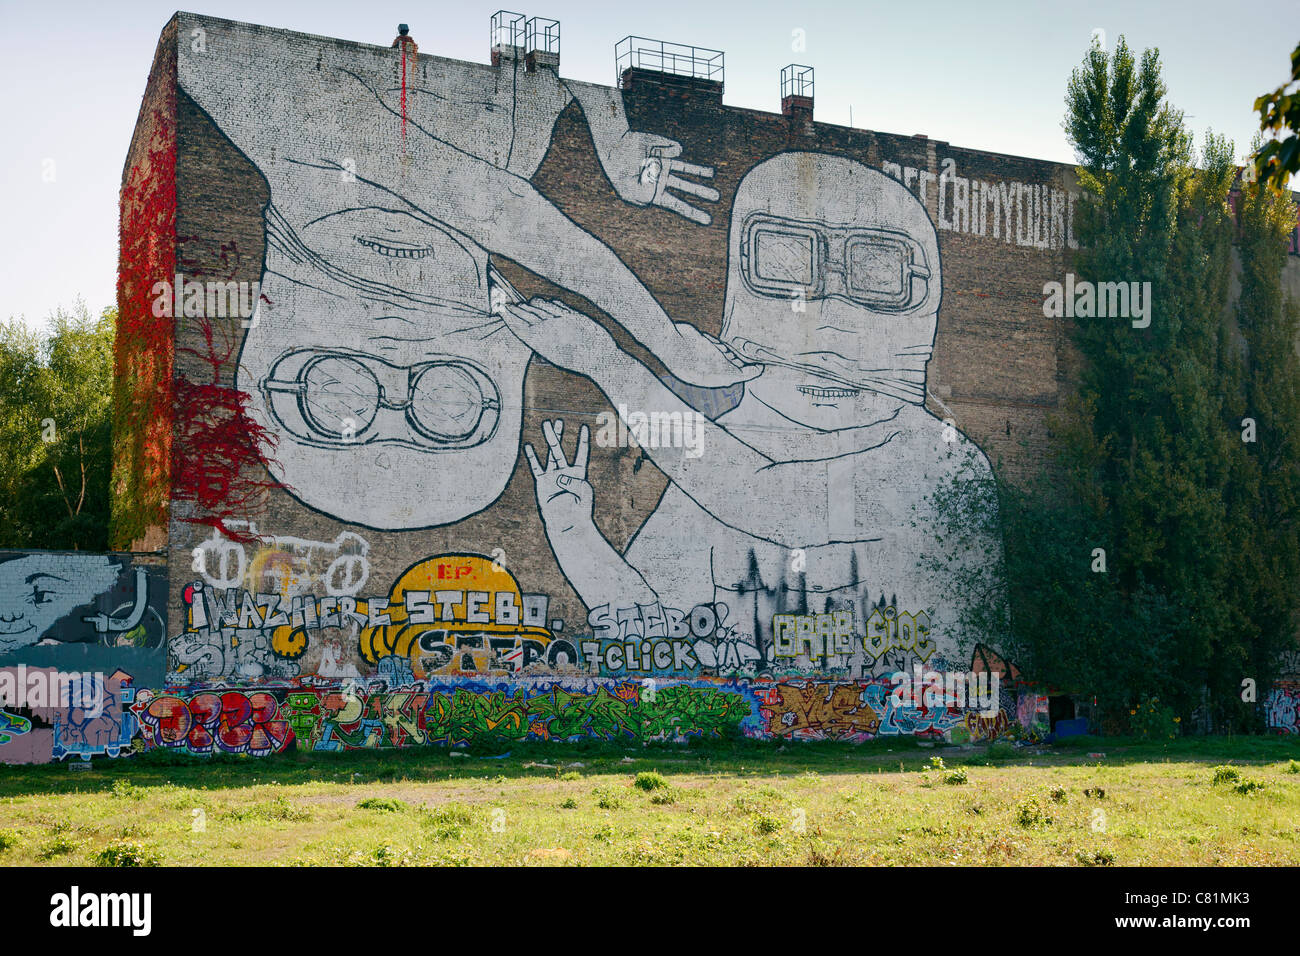 Graffiti by Blu in Cuvrystrasse, Berlin, Germany Stock Photo